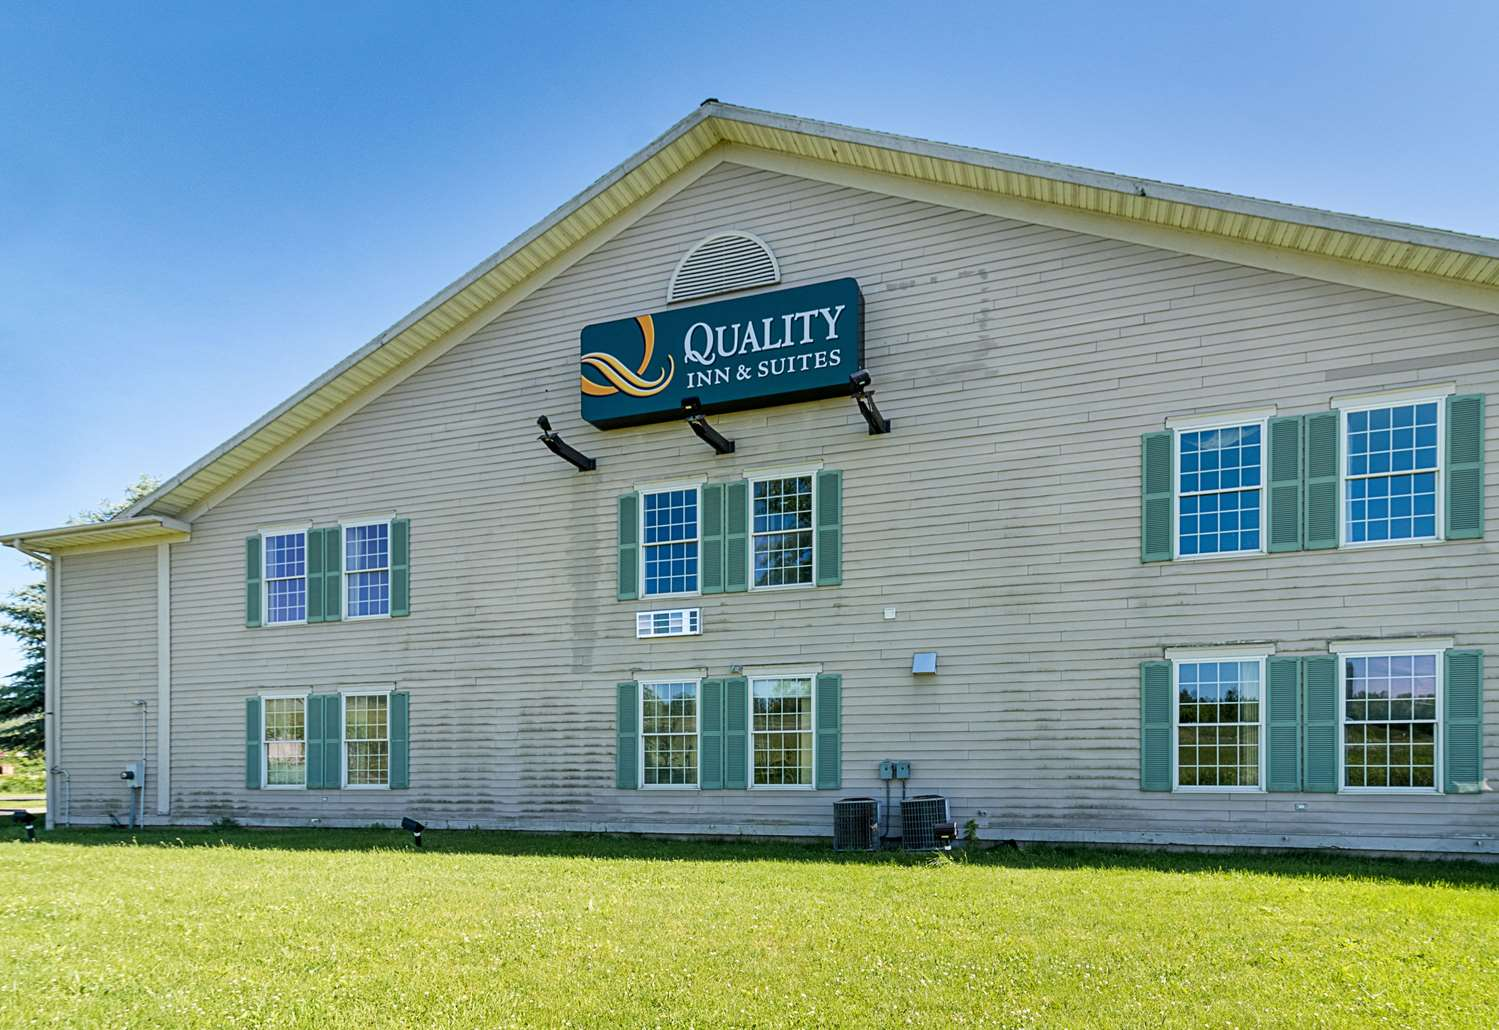 Exterior view - Quality Inn & Suites Schoharie